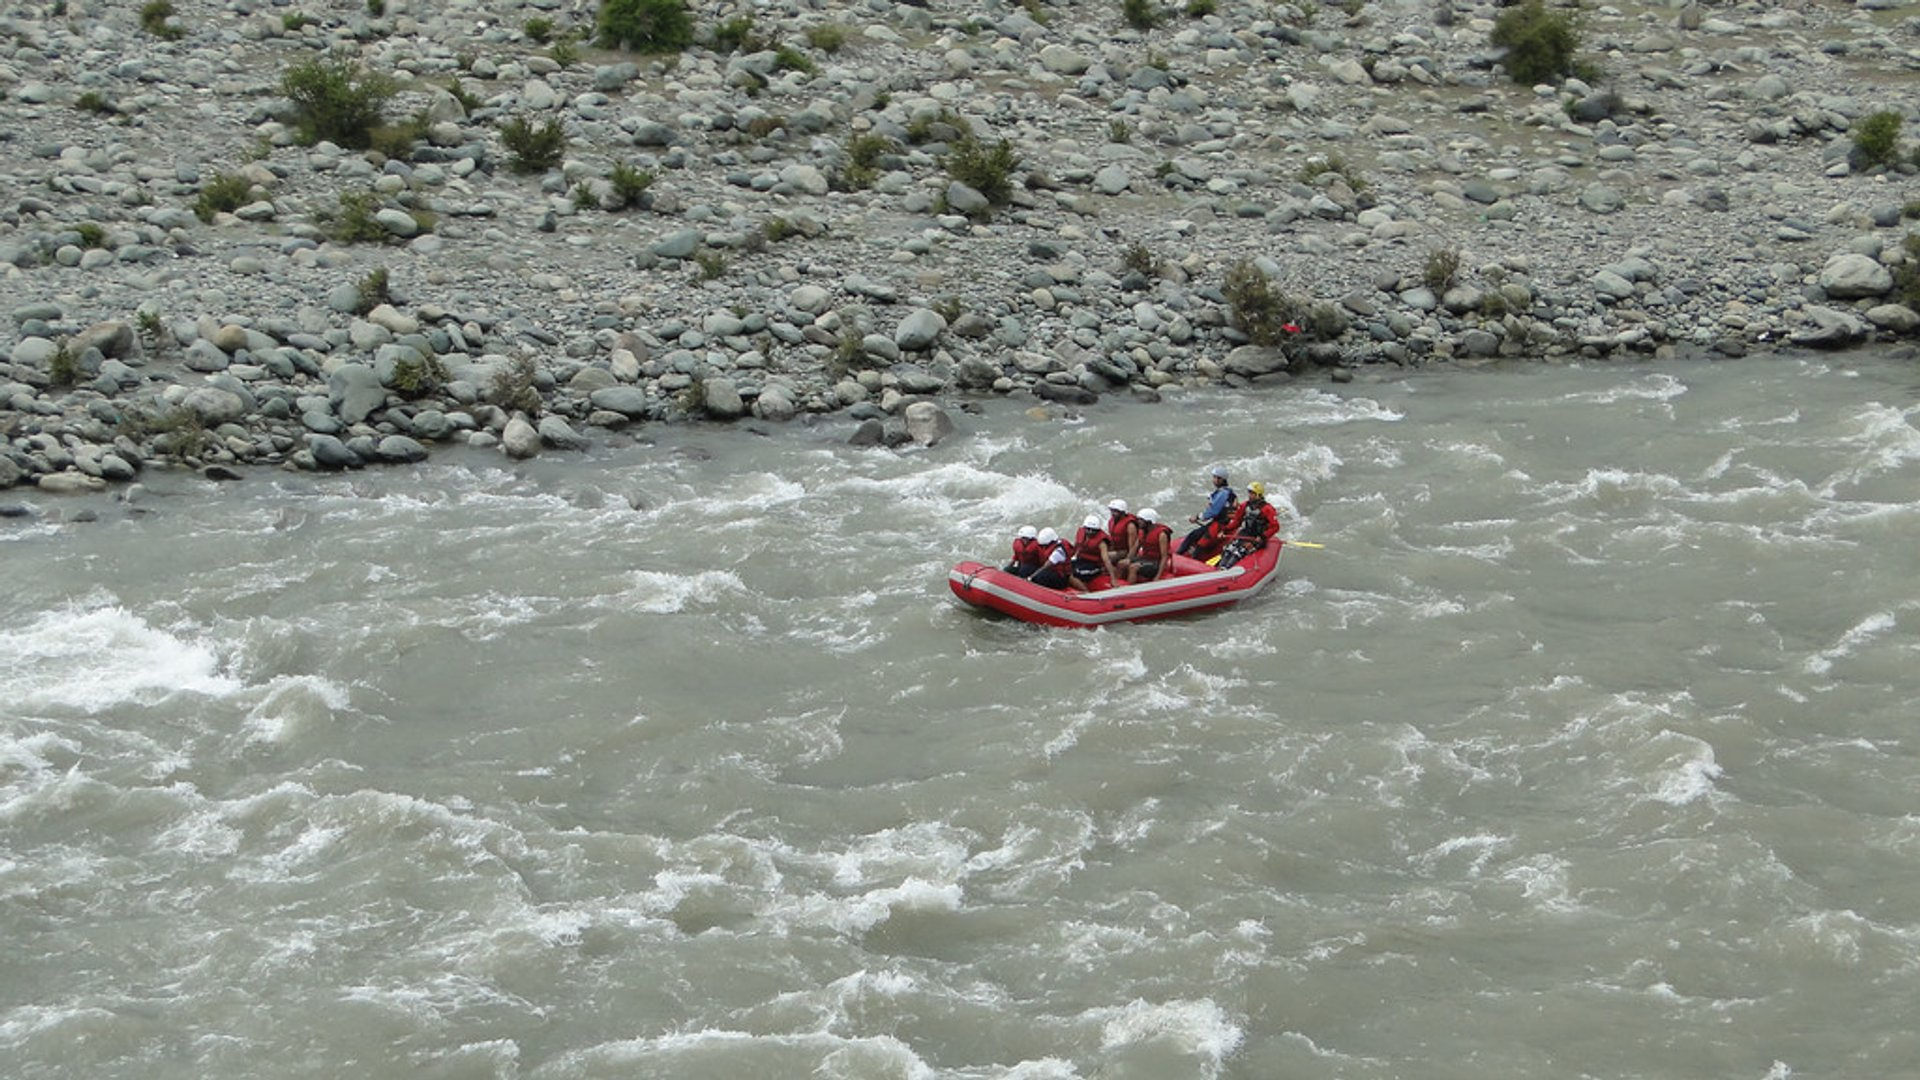 River Rafting in India 2020 - Best Time